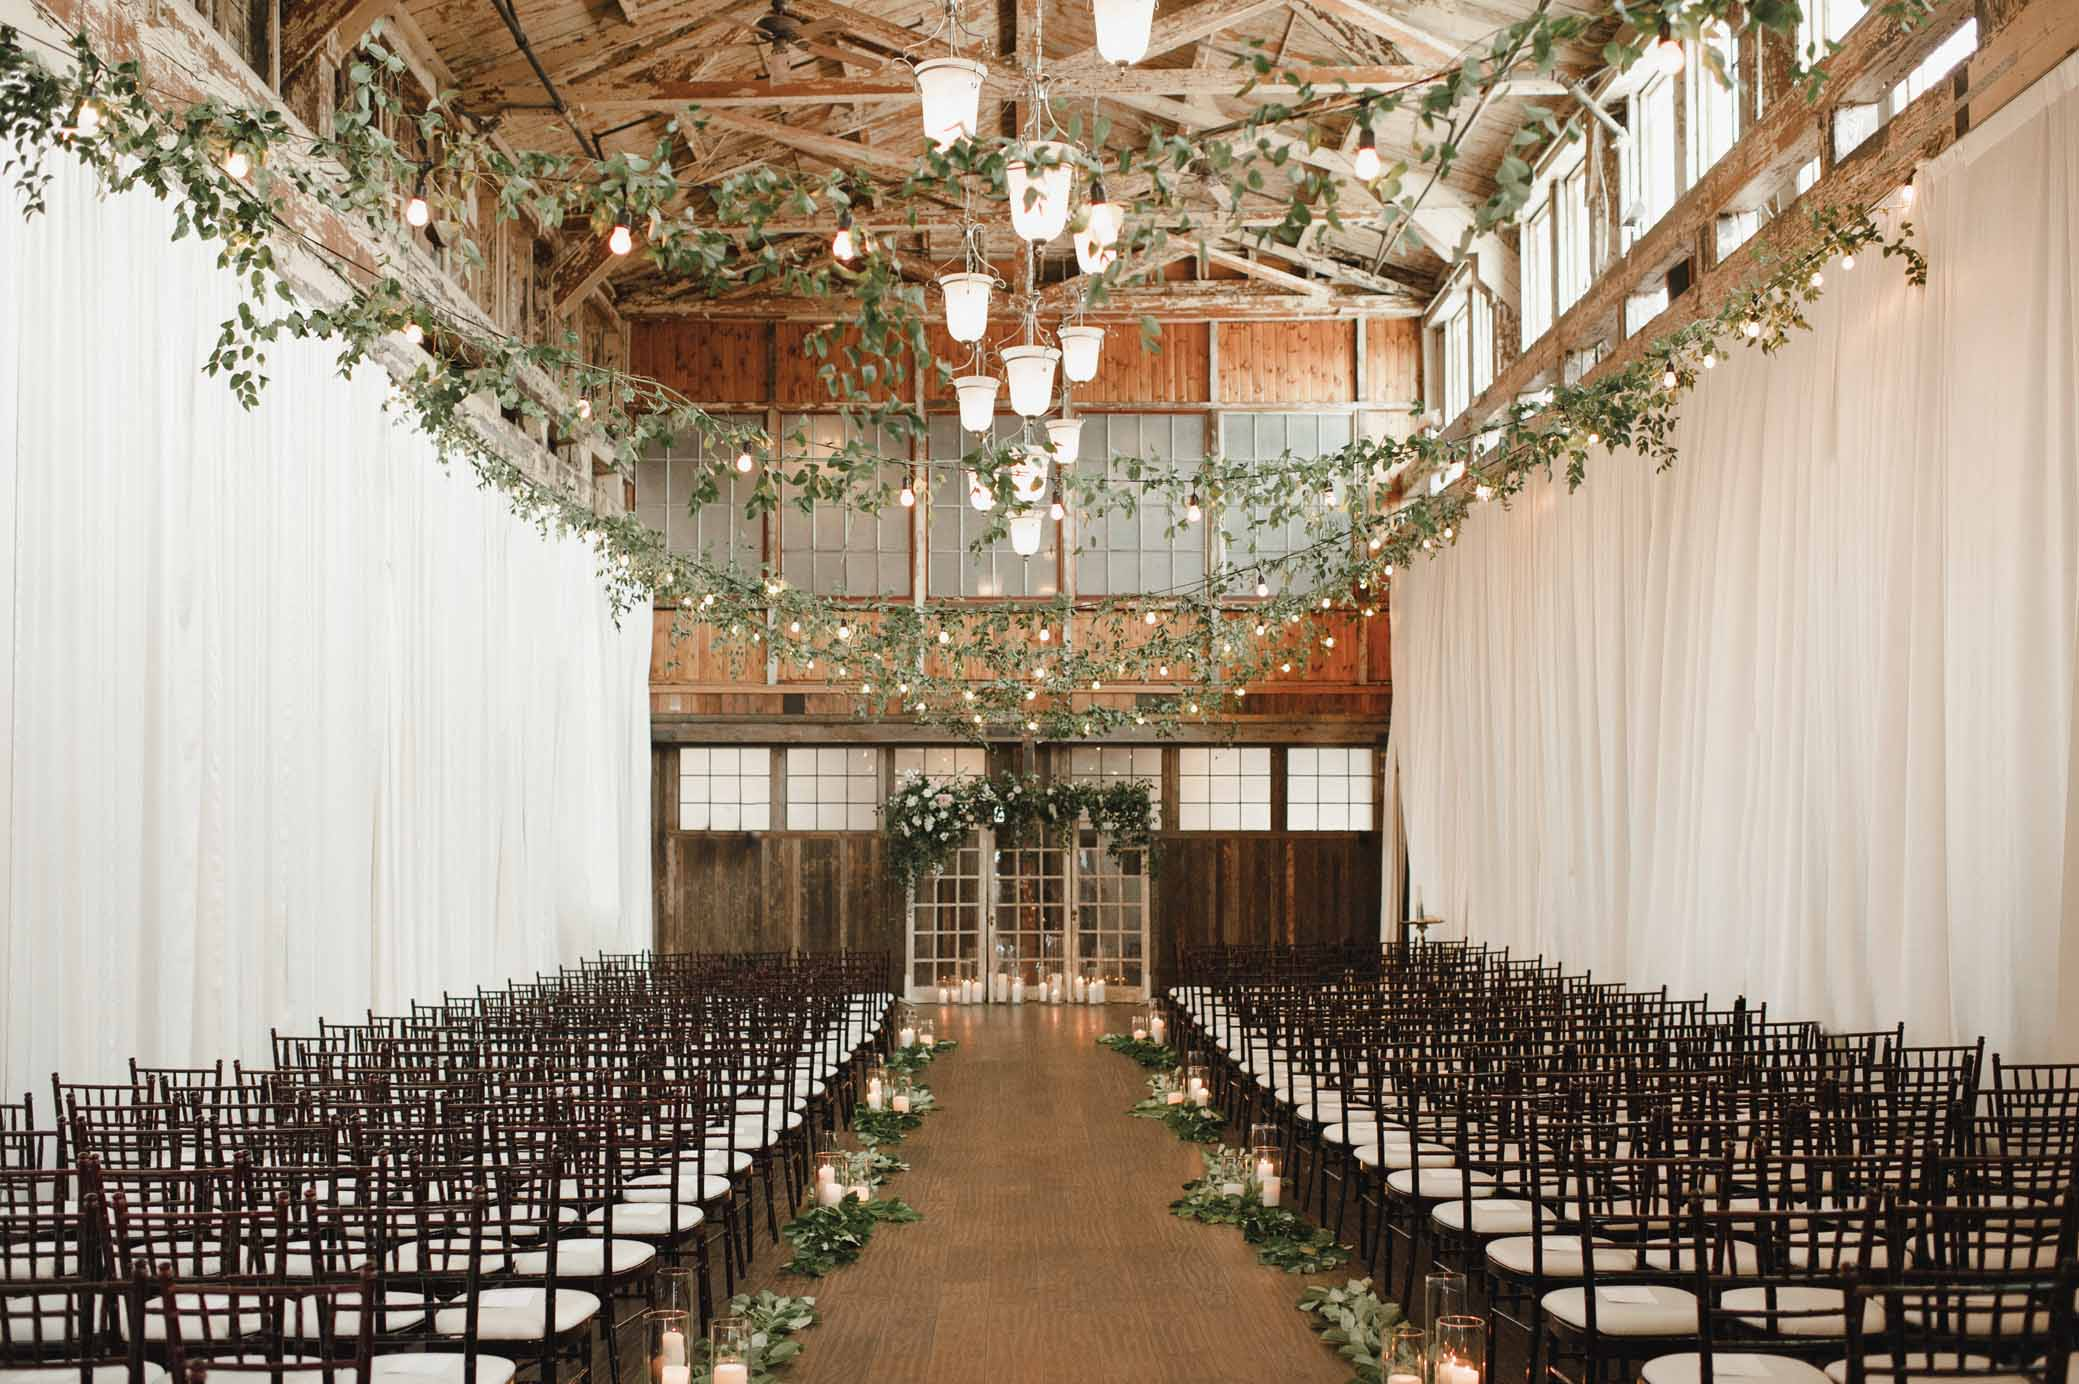 Sodo Park Seattle decorated for a wedding with ceiling greenery and a green wedding arch, candle lined aisle - designed by Flora Nova Design Seattle